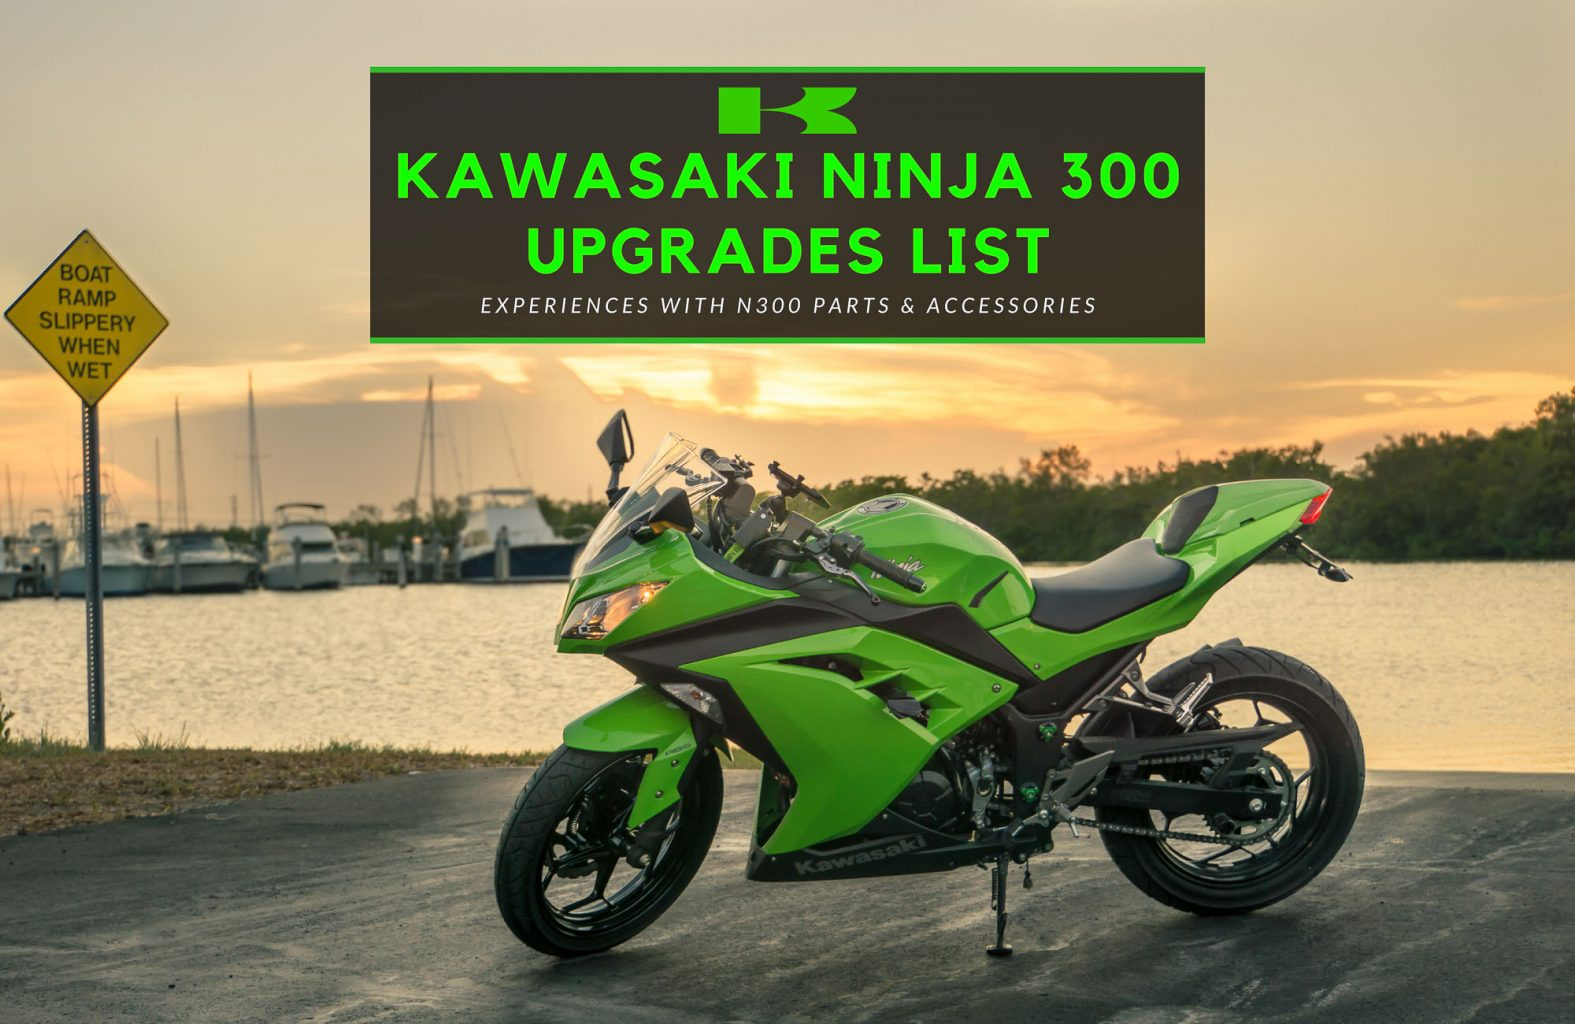 Kawasaki Ninja 300 Mods List Worthy Upgrades Accessories